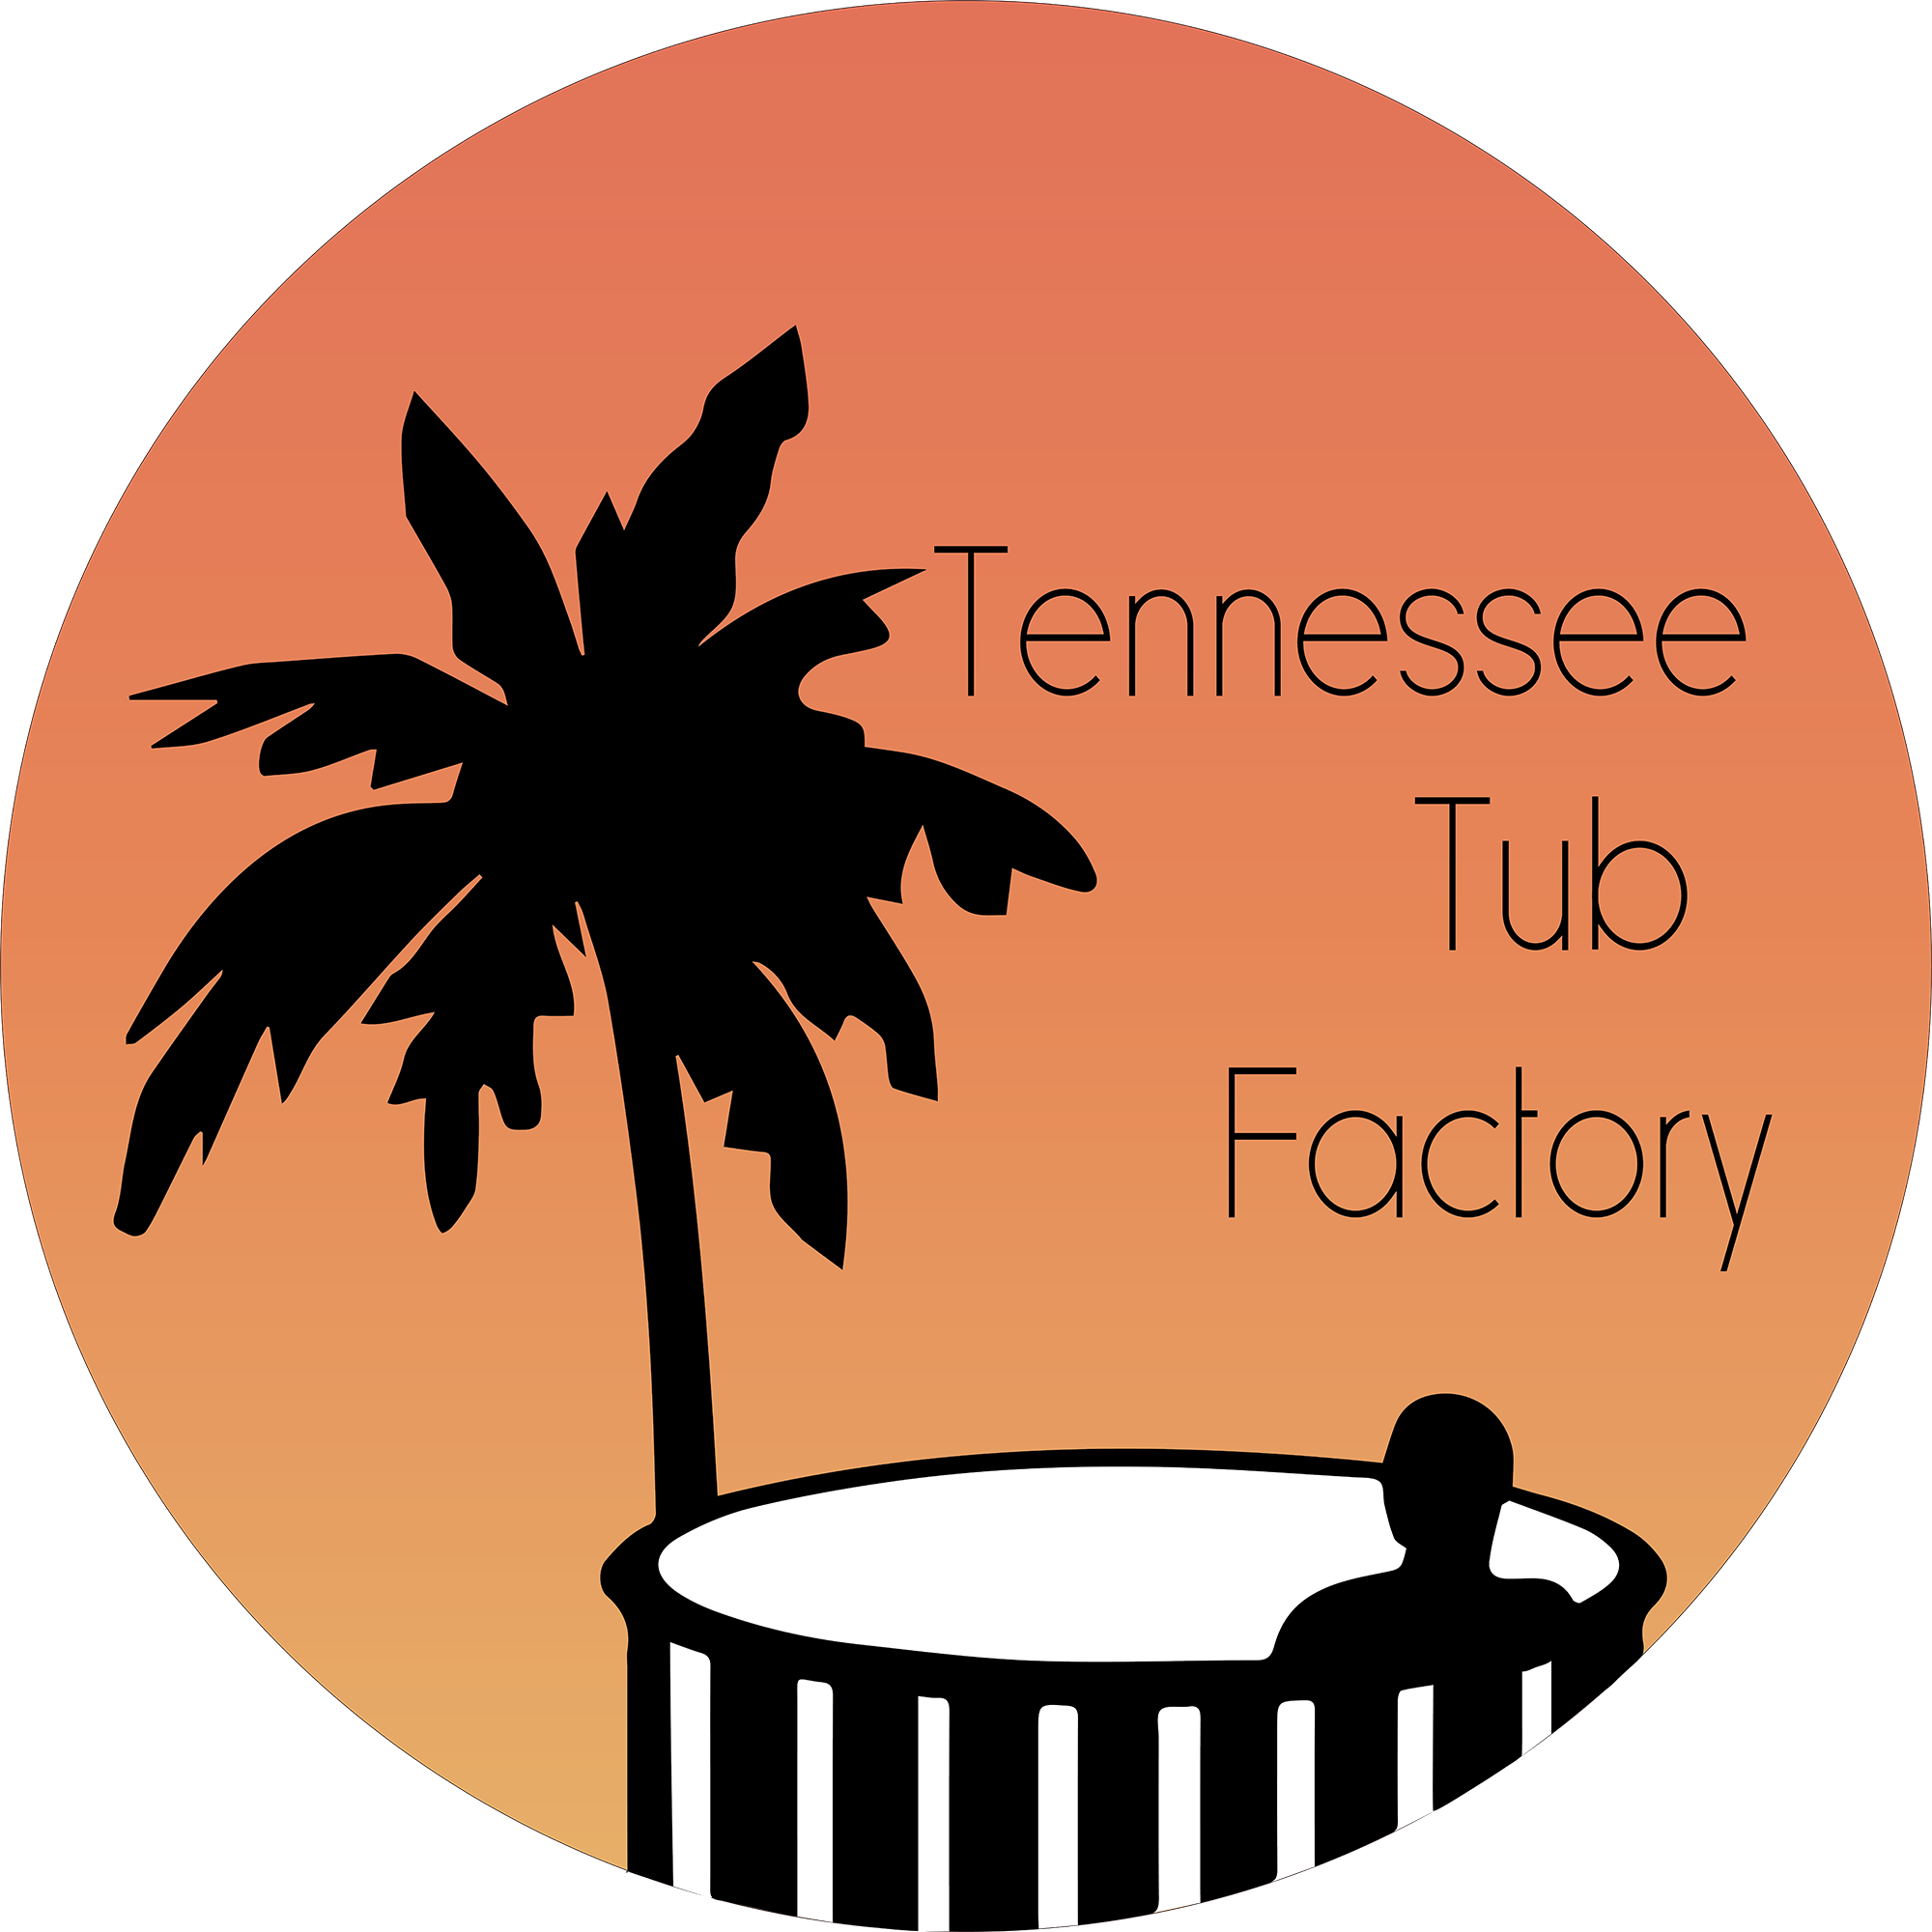 Tennessee Tub Factory